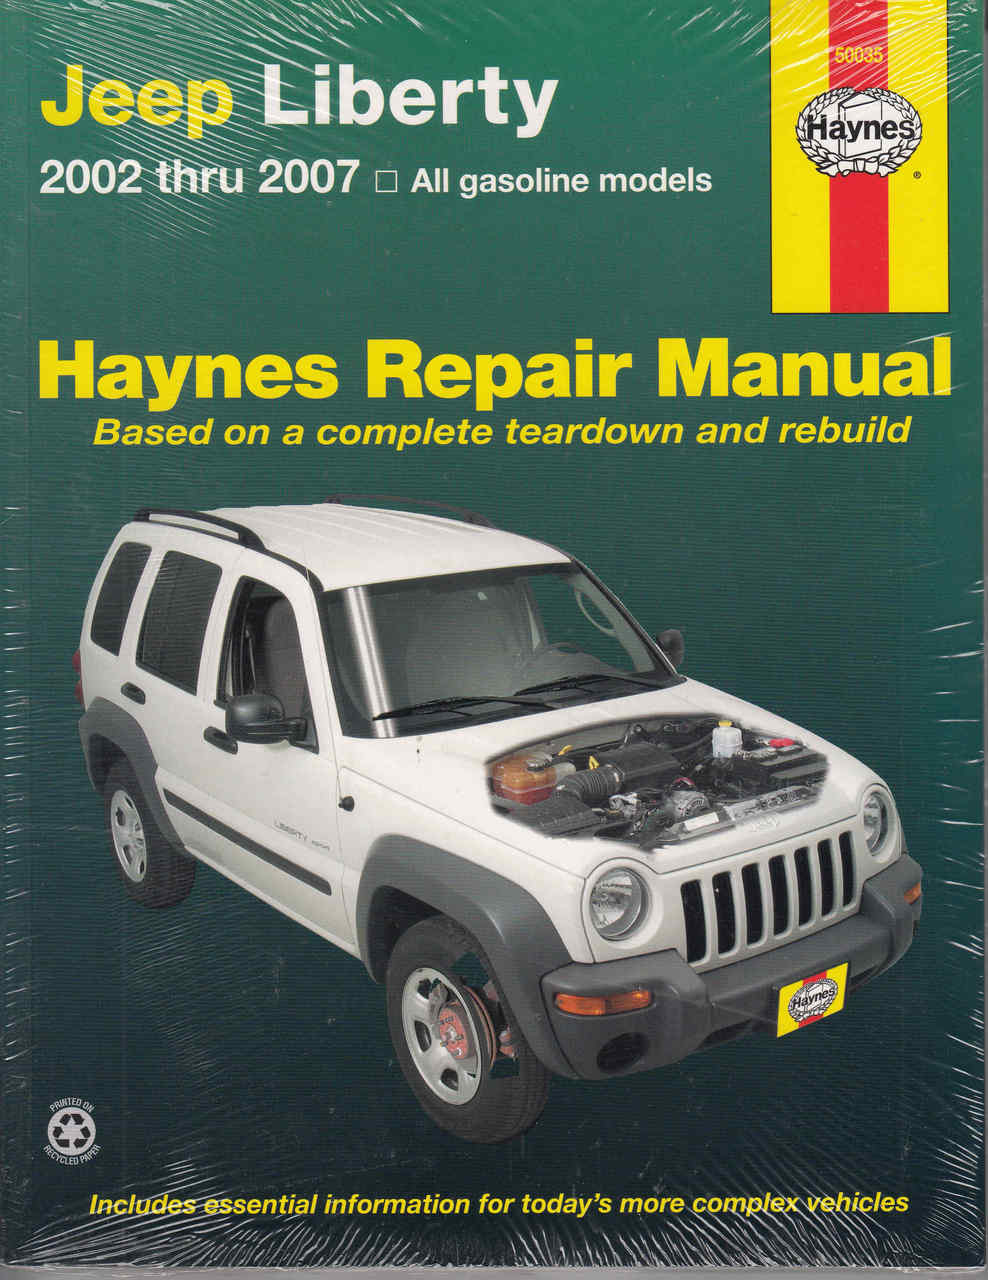 jeep liberty 2002 2007 gasoline models workshop manual rh automotobookshop  com au Custom 2002 Jeep Liberty 2002 Jeep Liberty Sport Manual